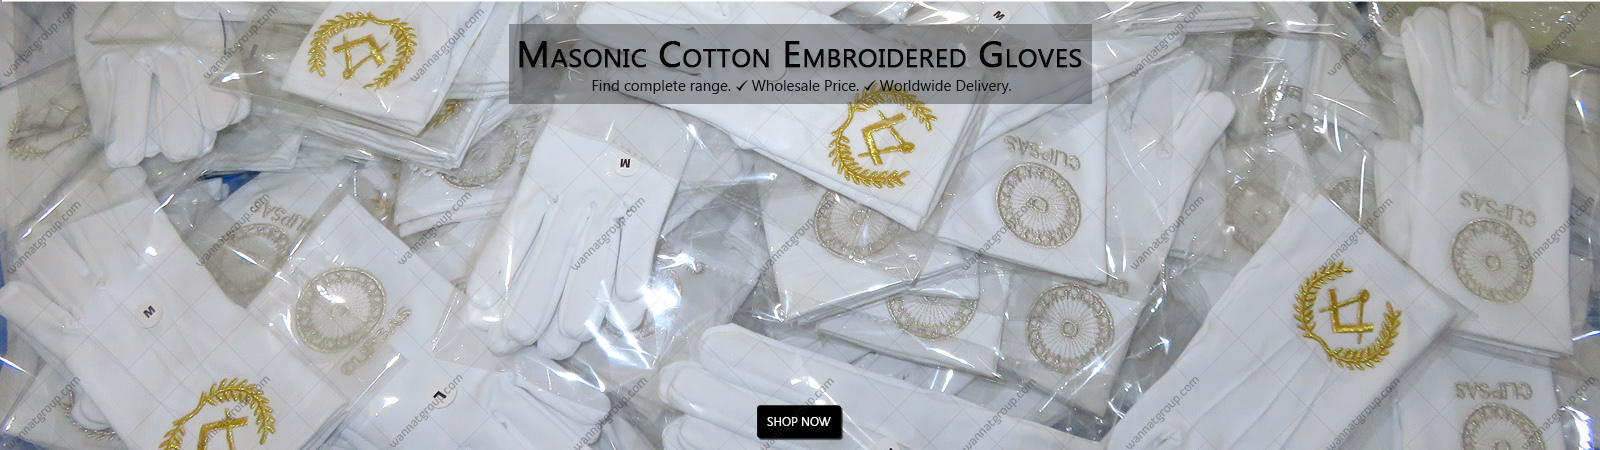 Masonic Cotton Gloves With Embroidery